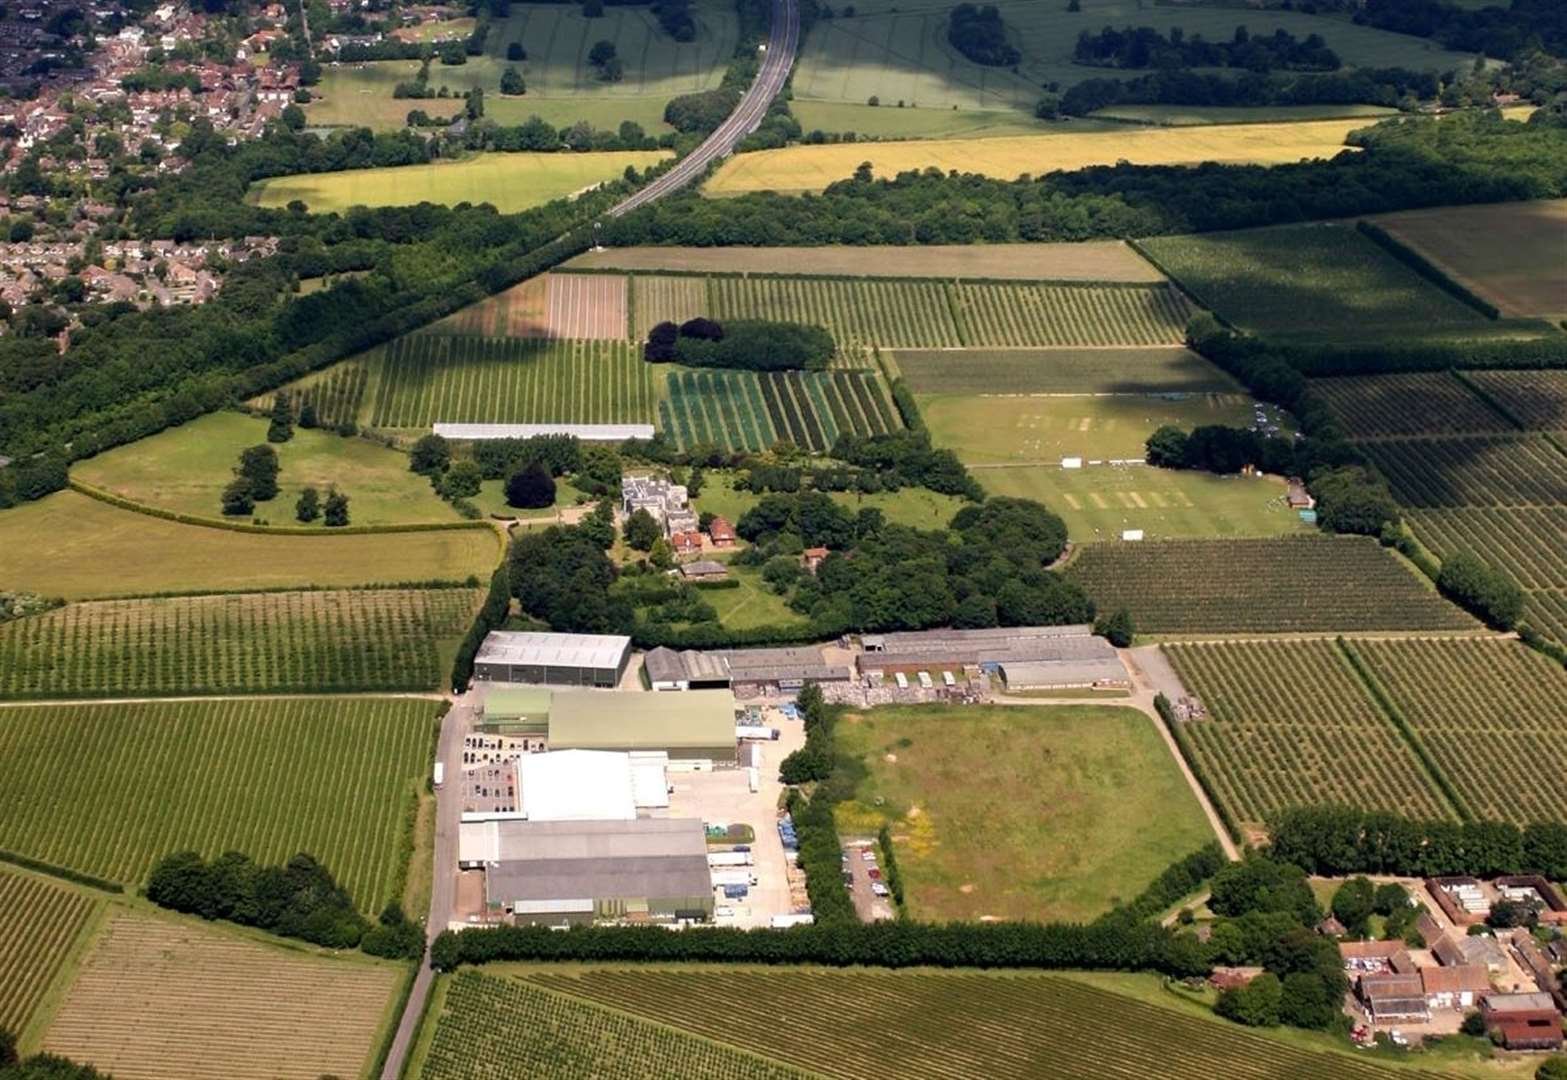 Revised farmland plan now includes winery